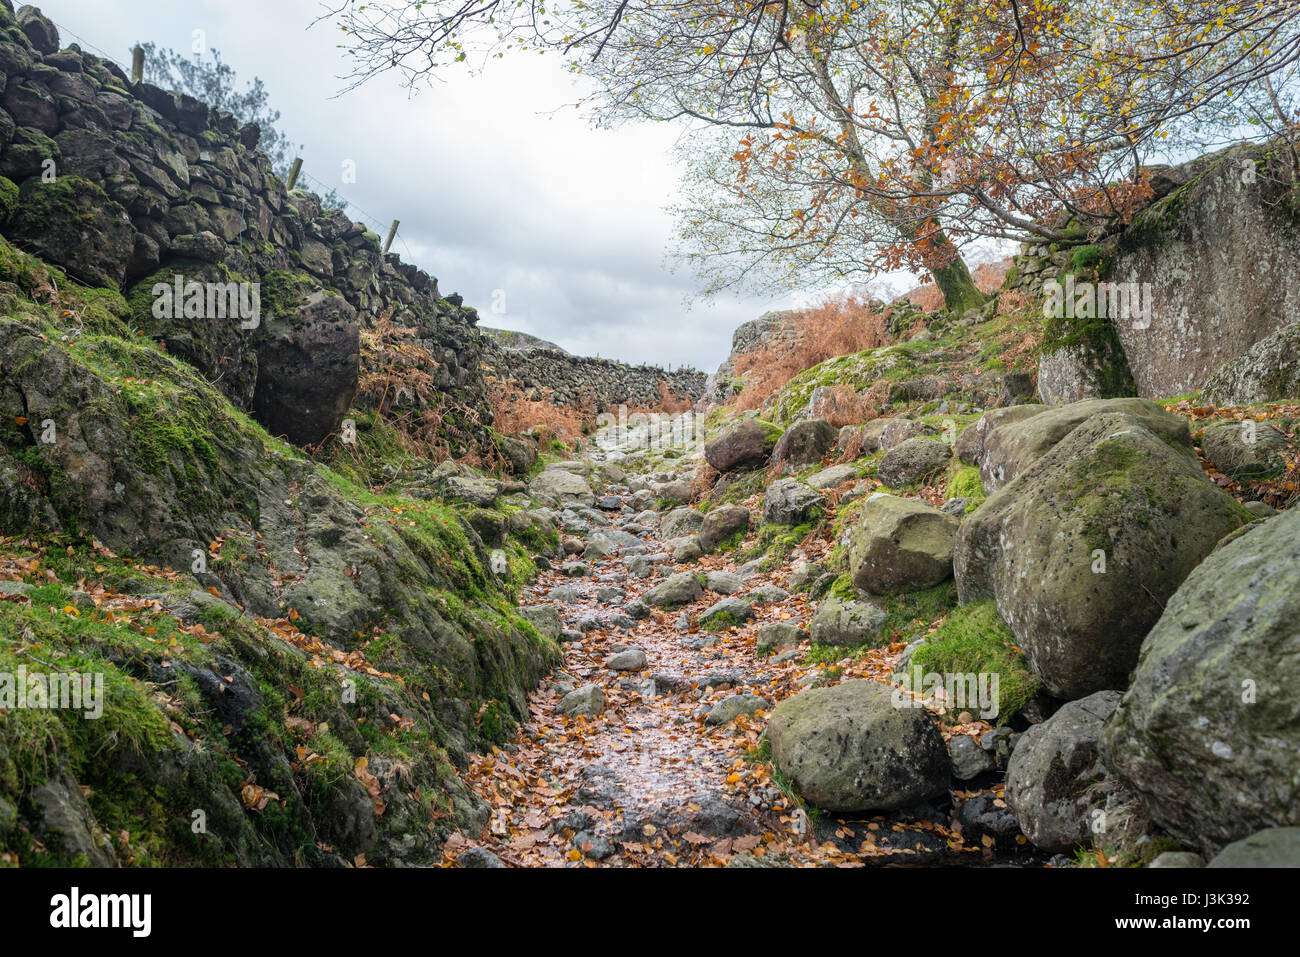 A rocky footpath running down beside Grasmere in the Lake District, England - Stock Image